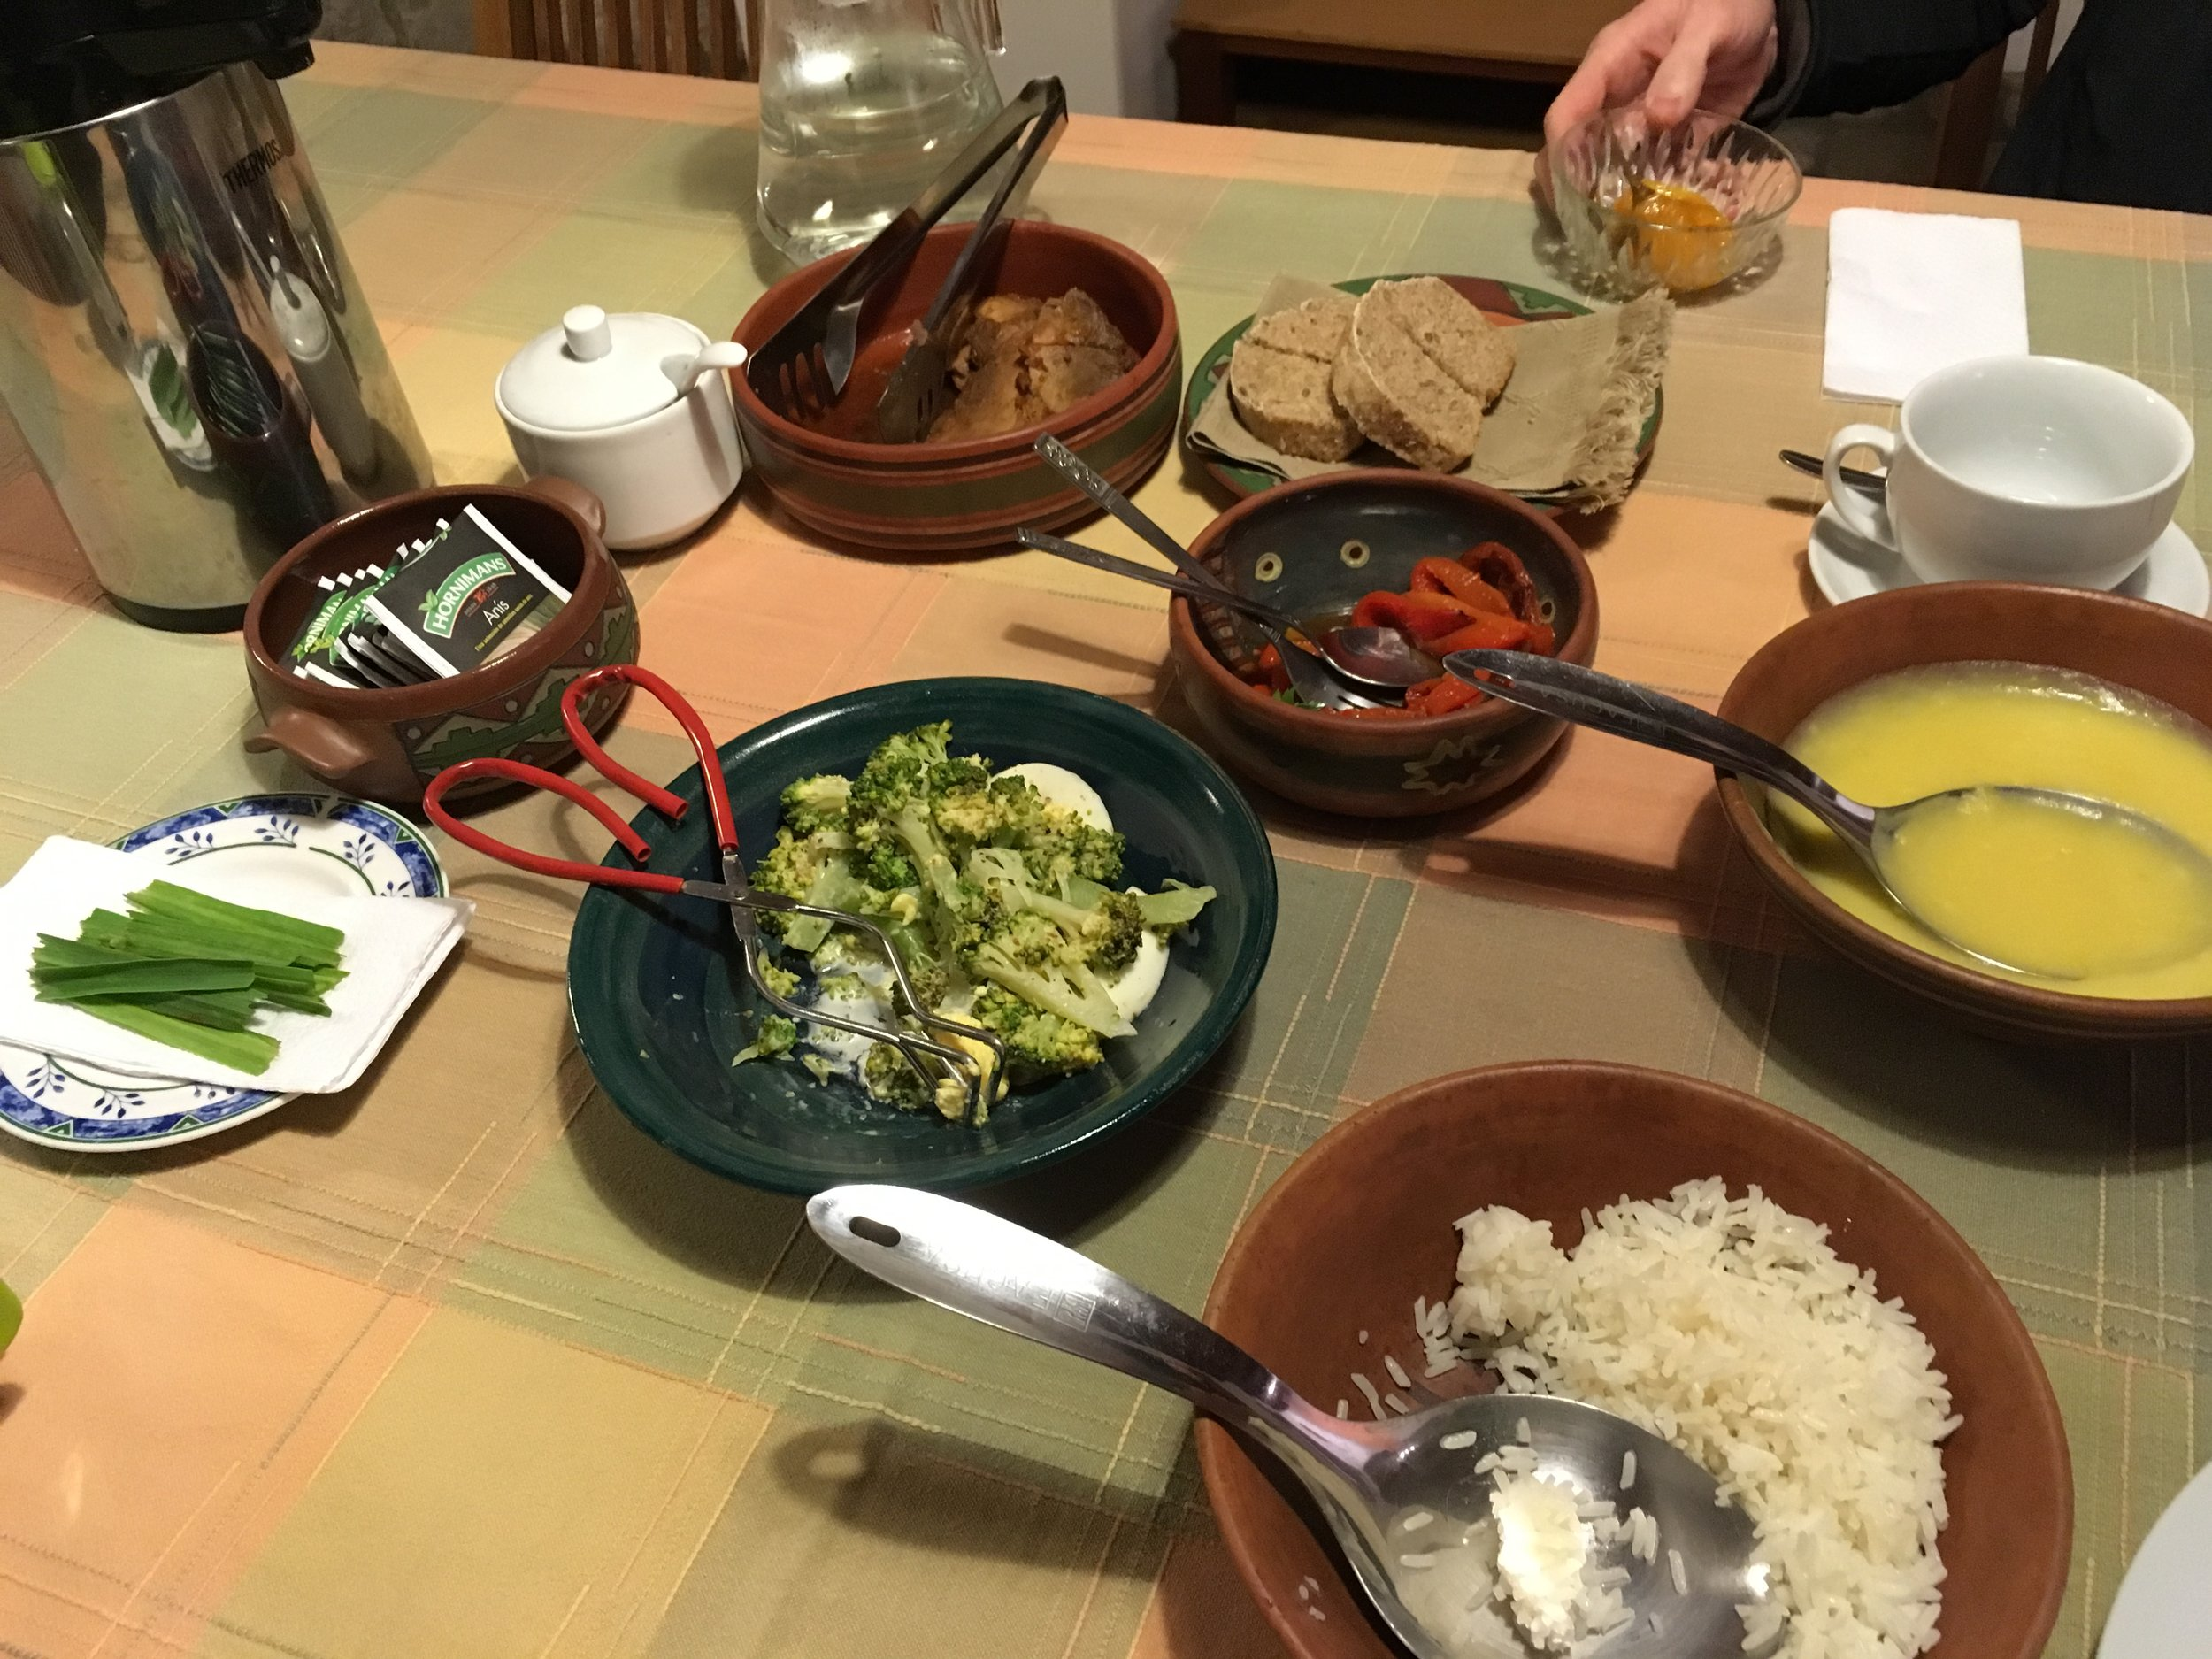 Levy & Evers - Chachapoyas Testimonial - Casa Mallqui Meal.jpg